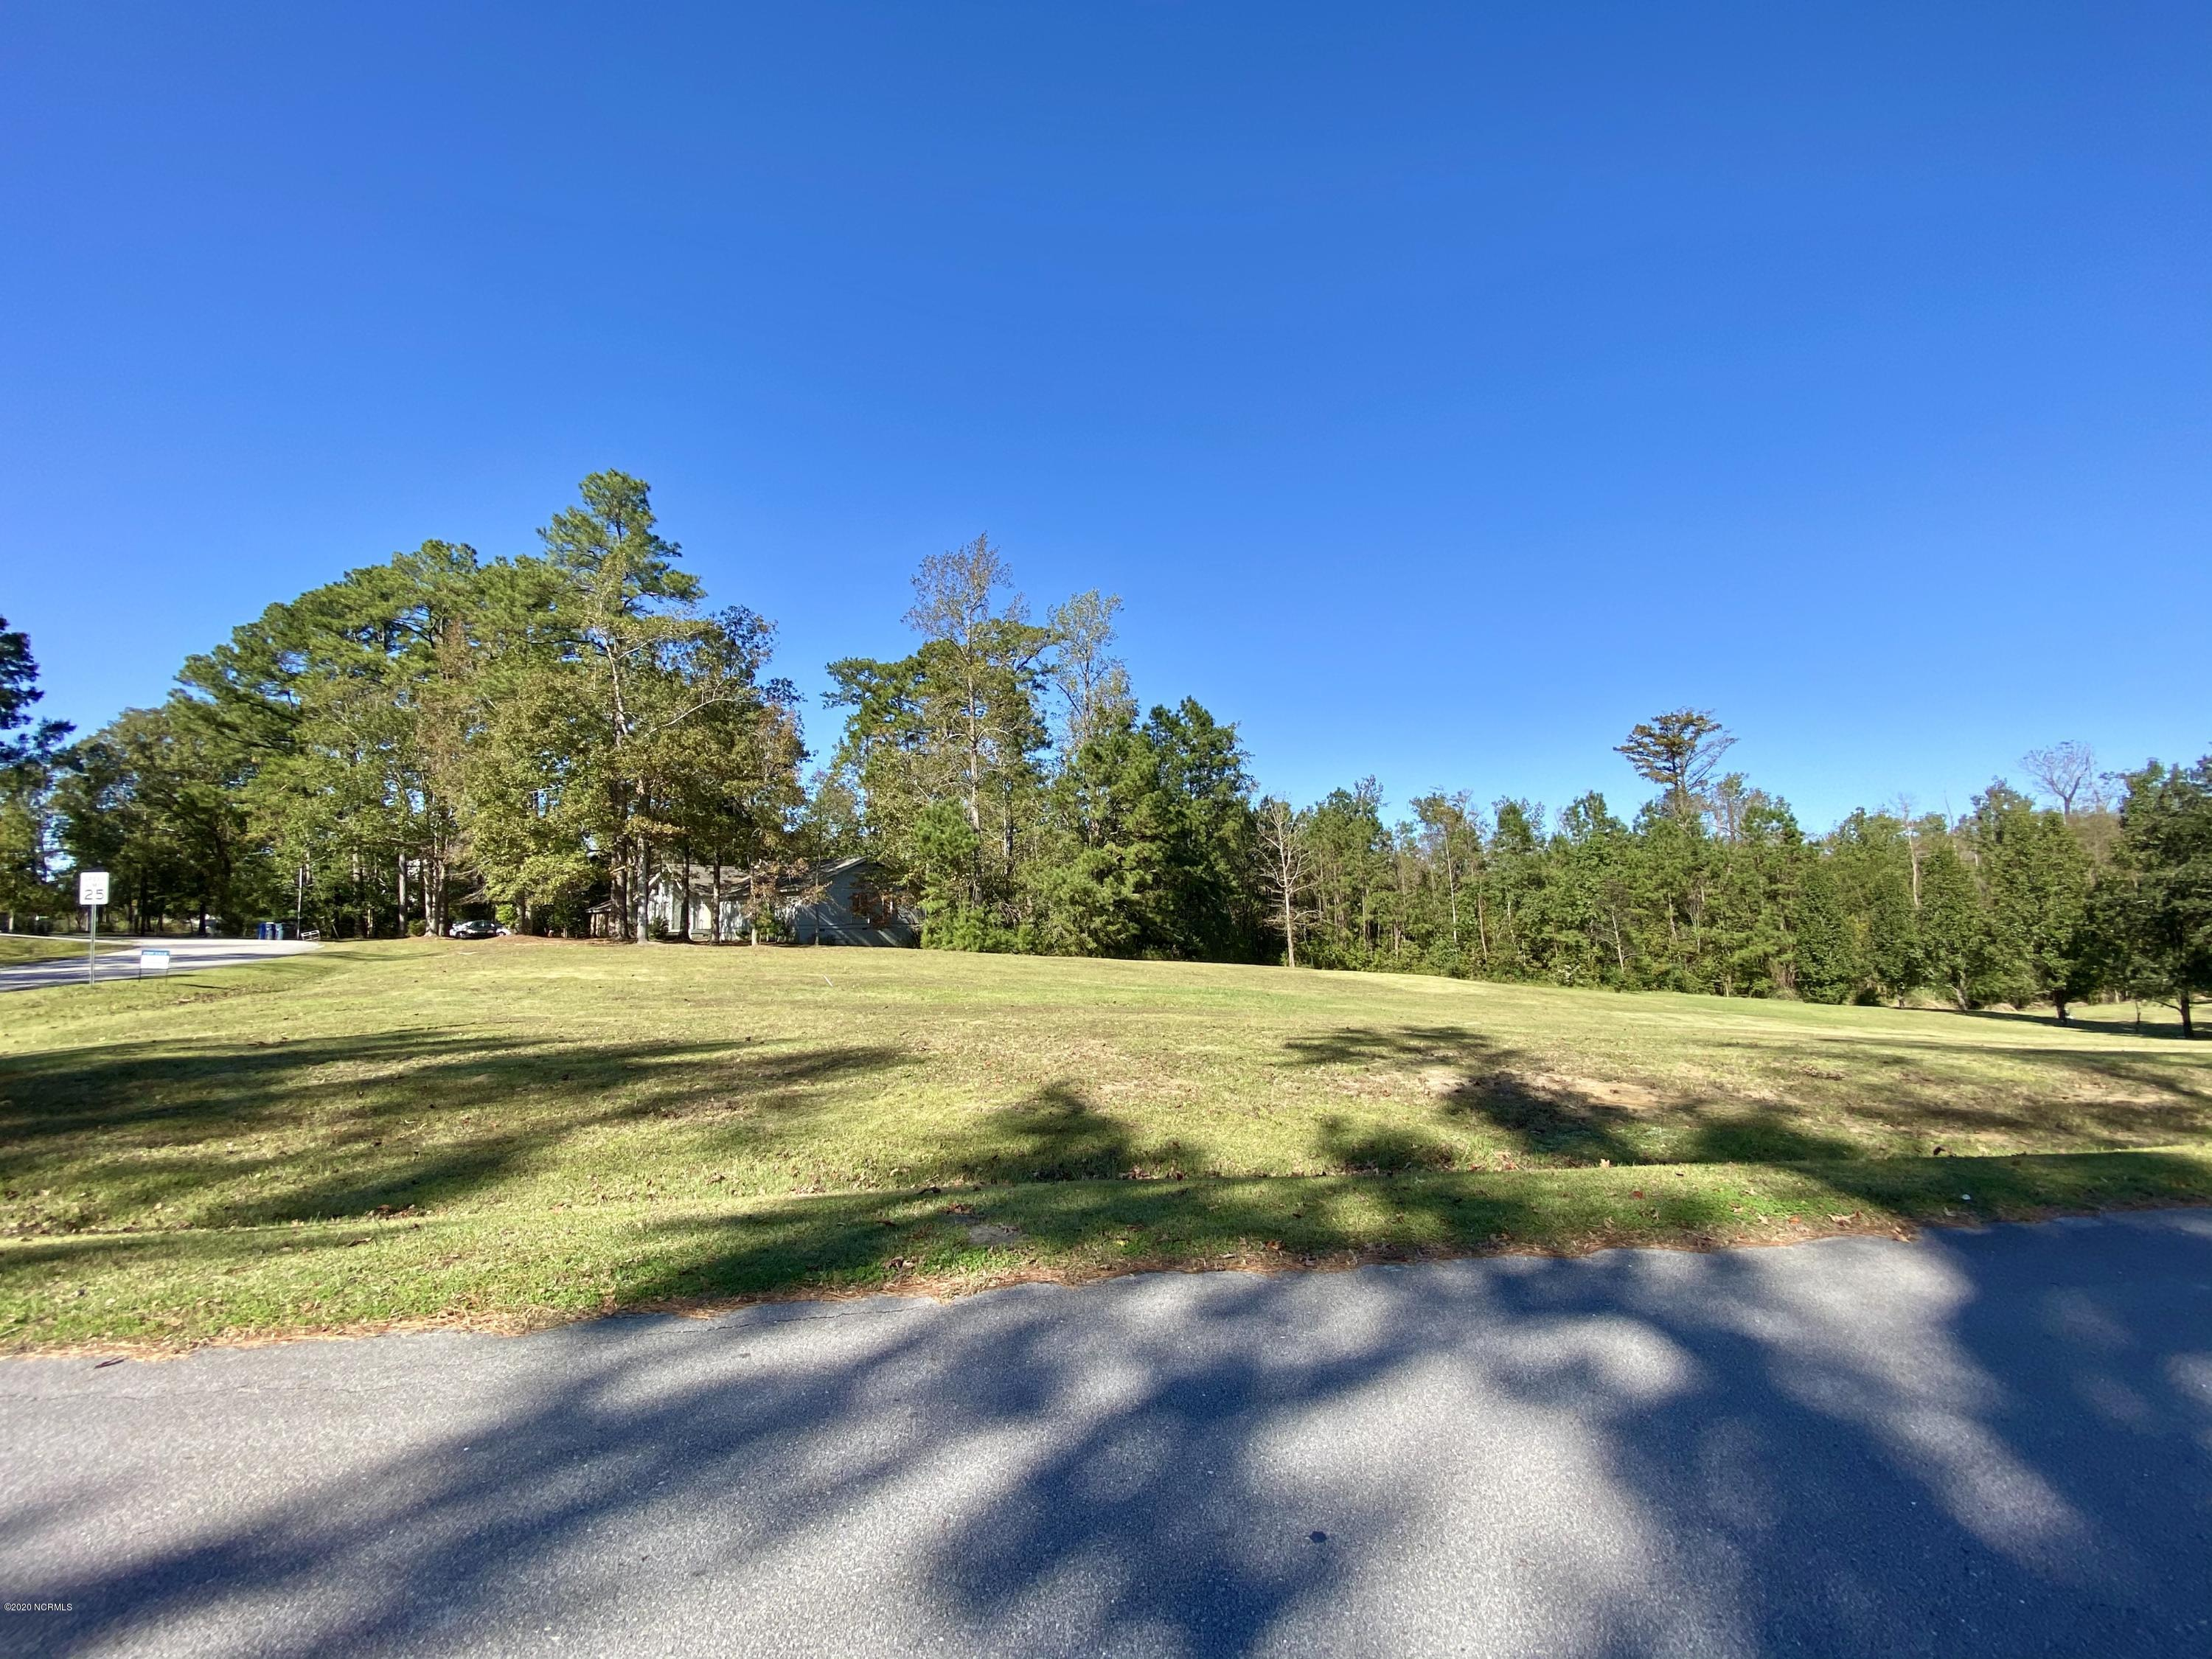 Price reduced!! Build your custom dream home on this cleared .64 acre lot in Country Club! This gorgeous piece of property is situated on the corner of Country Club Drive and Greenway Road. The property is currently part of a 1.18 acre lot but owner will divide.  Call for more info!